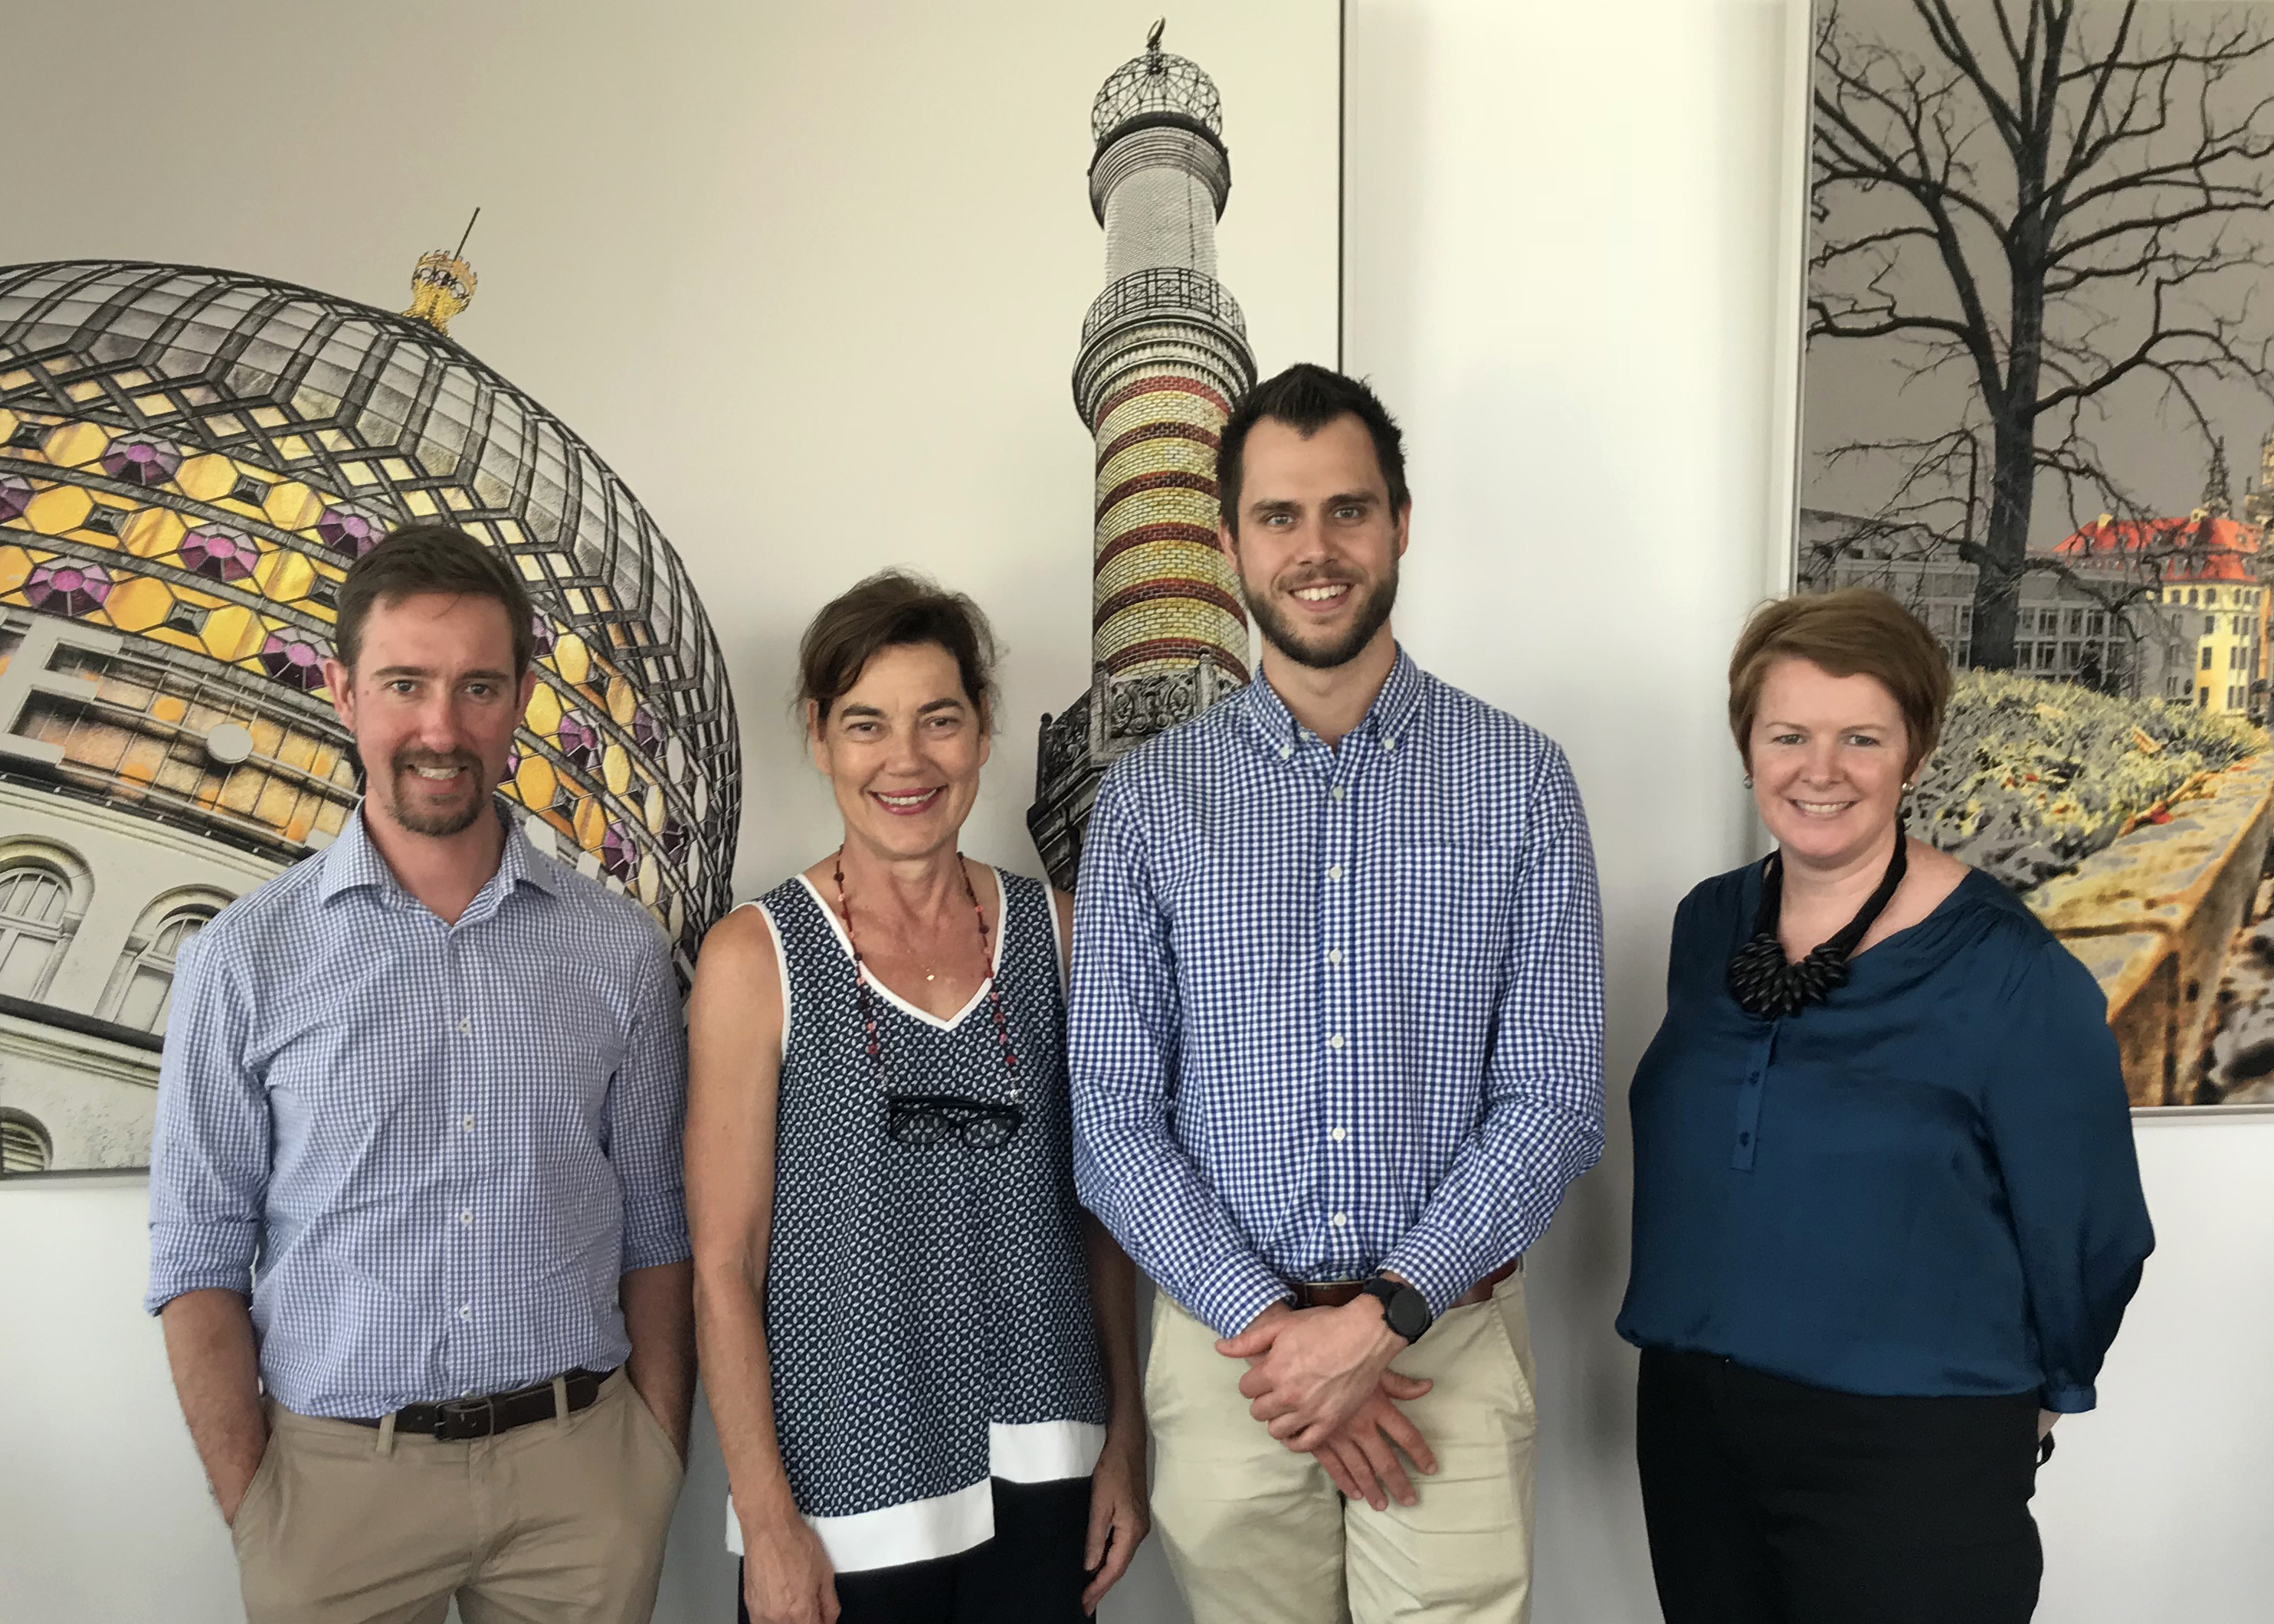 Dr Andrew Vakulin, Dr Lynda Norton, Robert Trott, and Dr Sinead O'Connell (left to right)